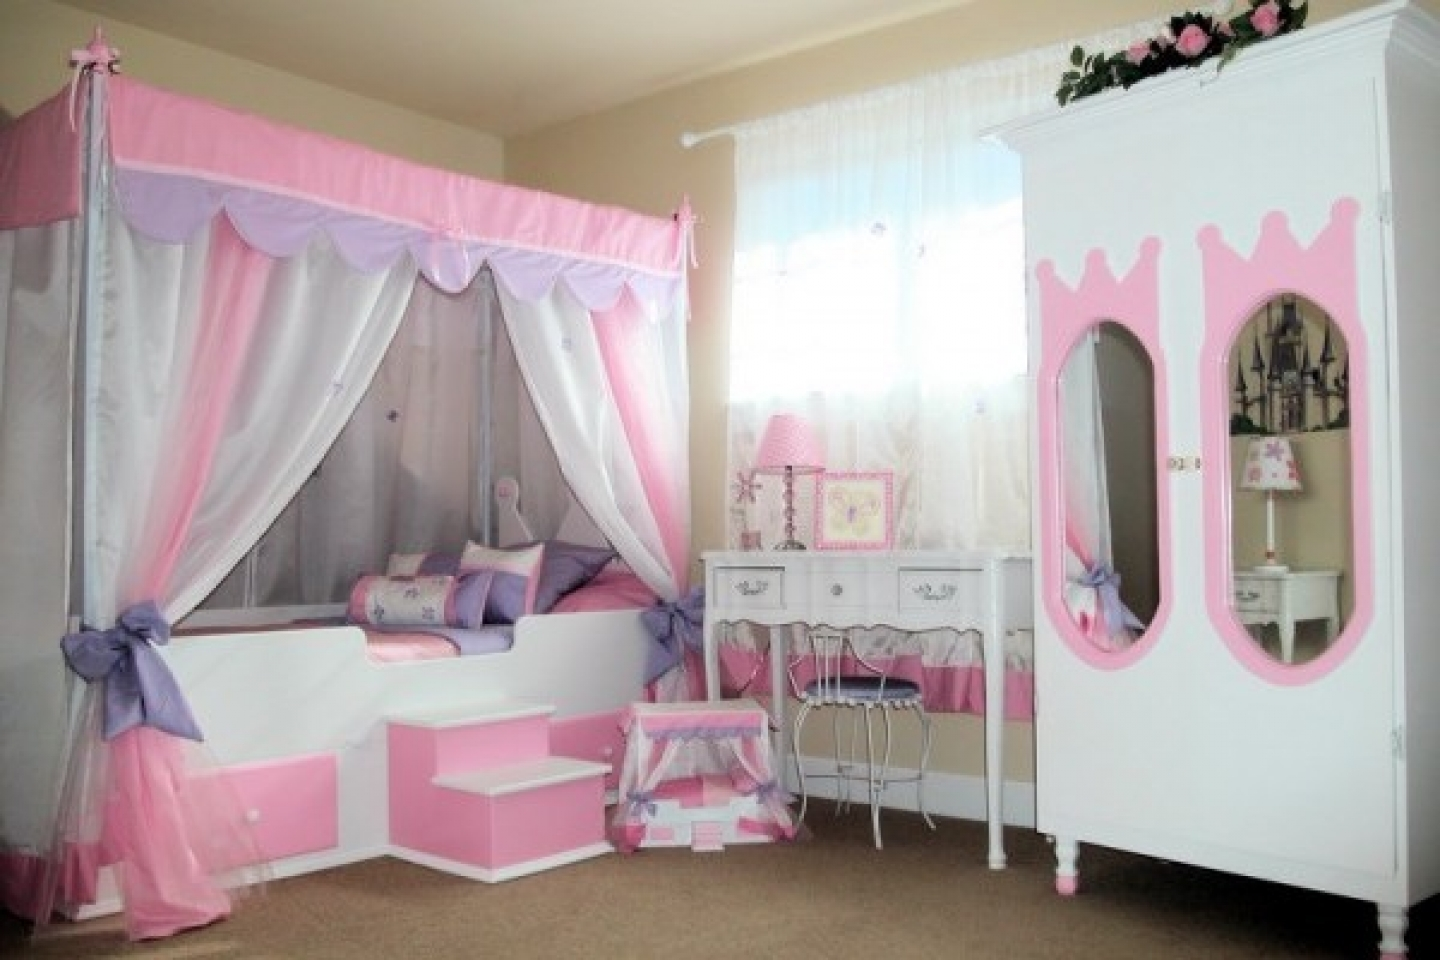 A Guide to Choosing Bedroom Furniture for a Girl - Top 10 Cool ...